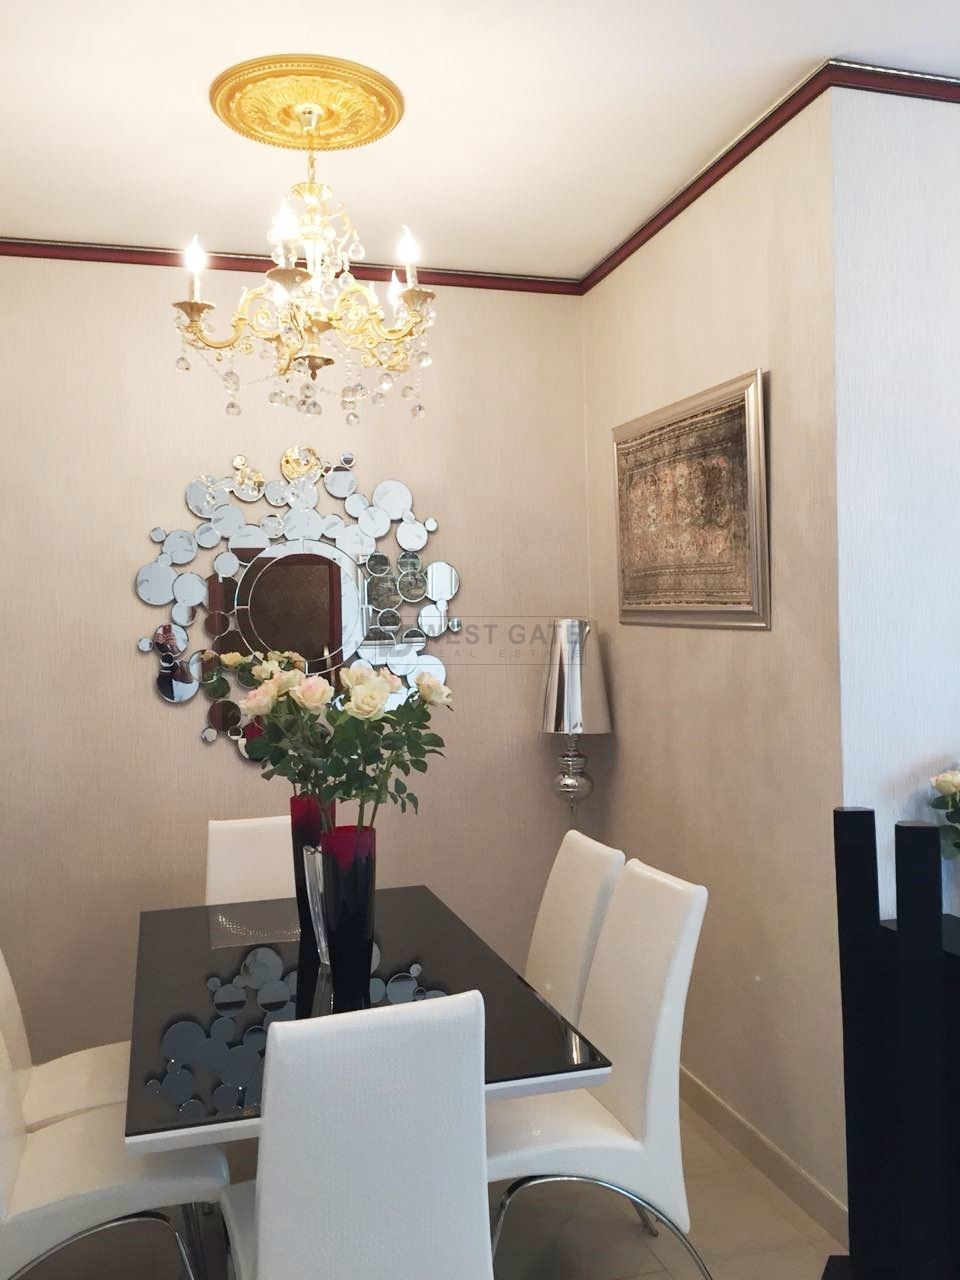 furnished-1-bedroom-standpoint-a-aed-85000